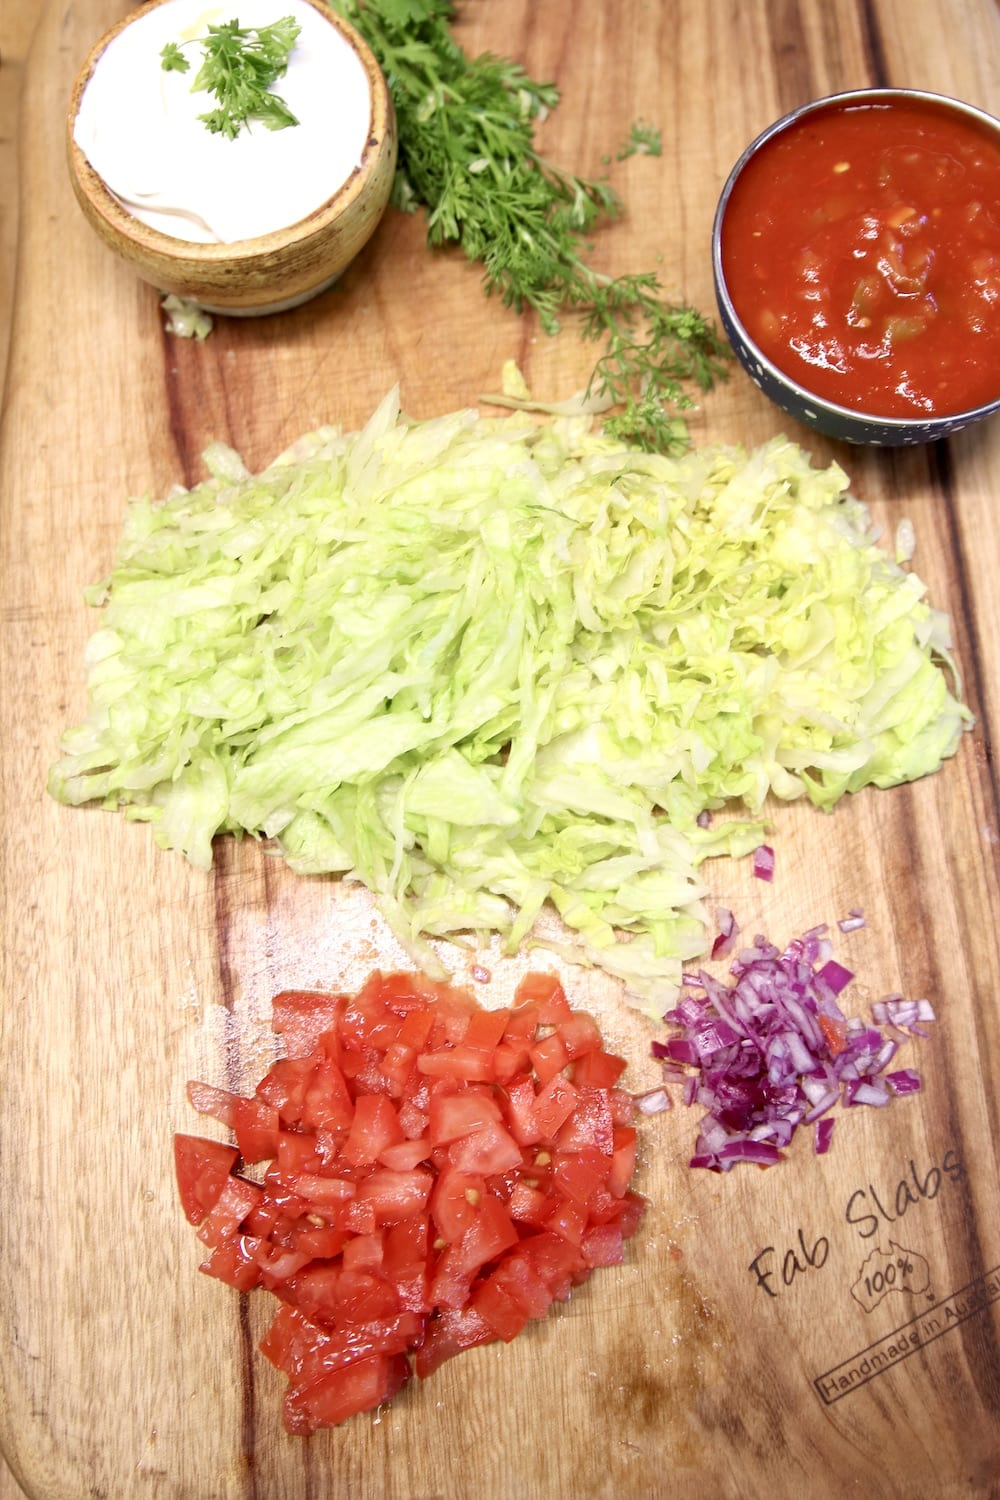 cutting board with sour cream, salsa, lettuce, tomatoes onions for topping enchiladas